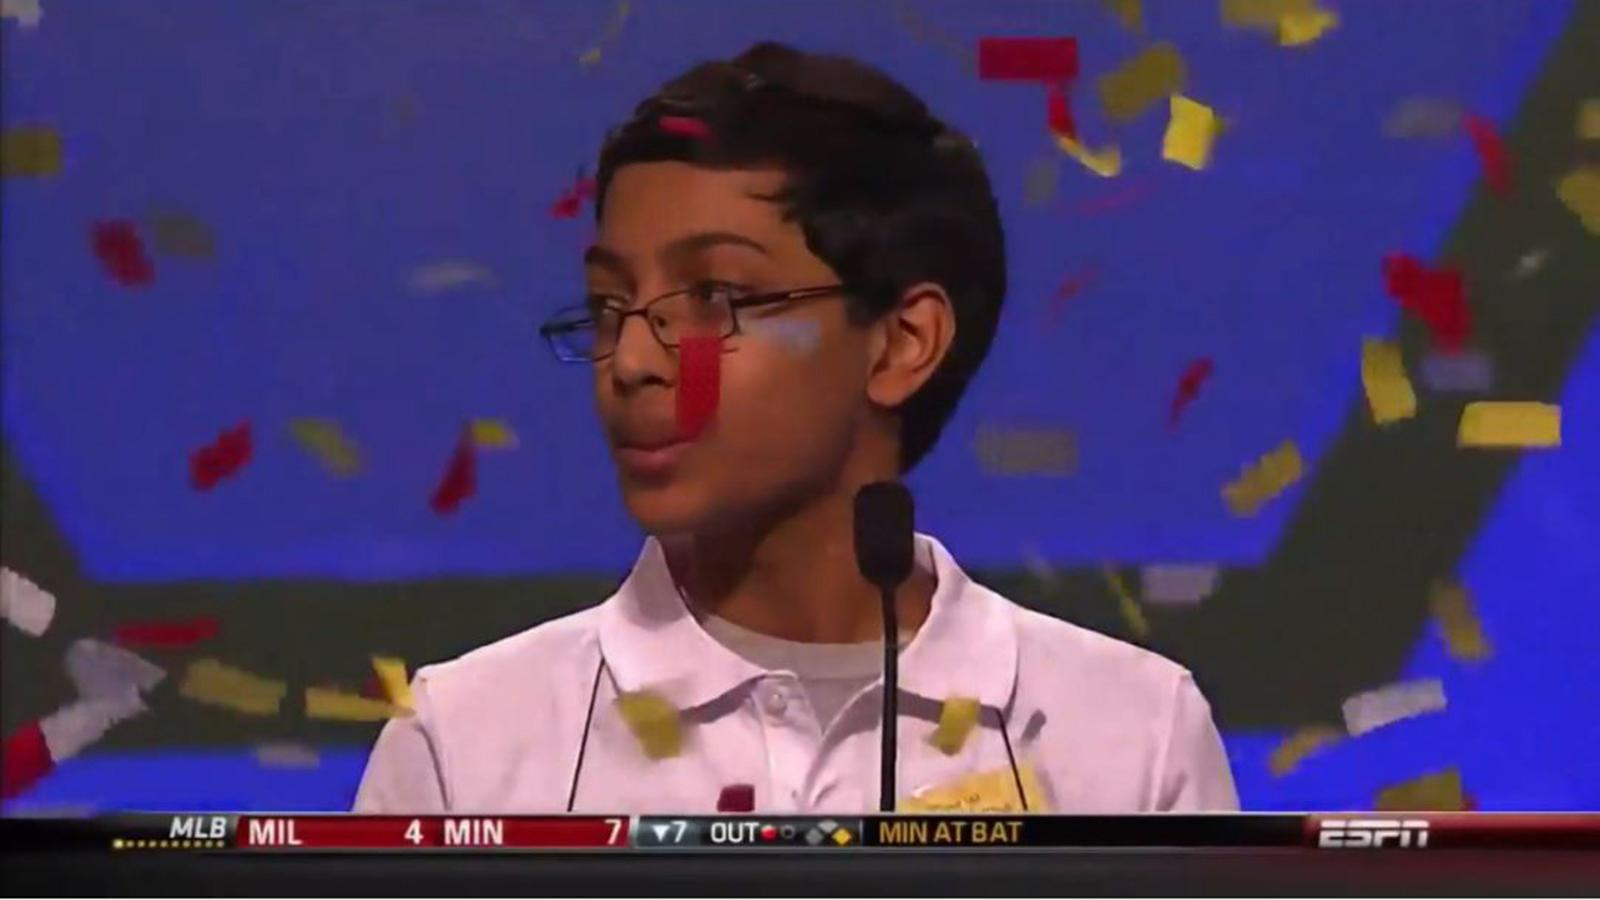 Spelling Bee contestant with confetti